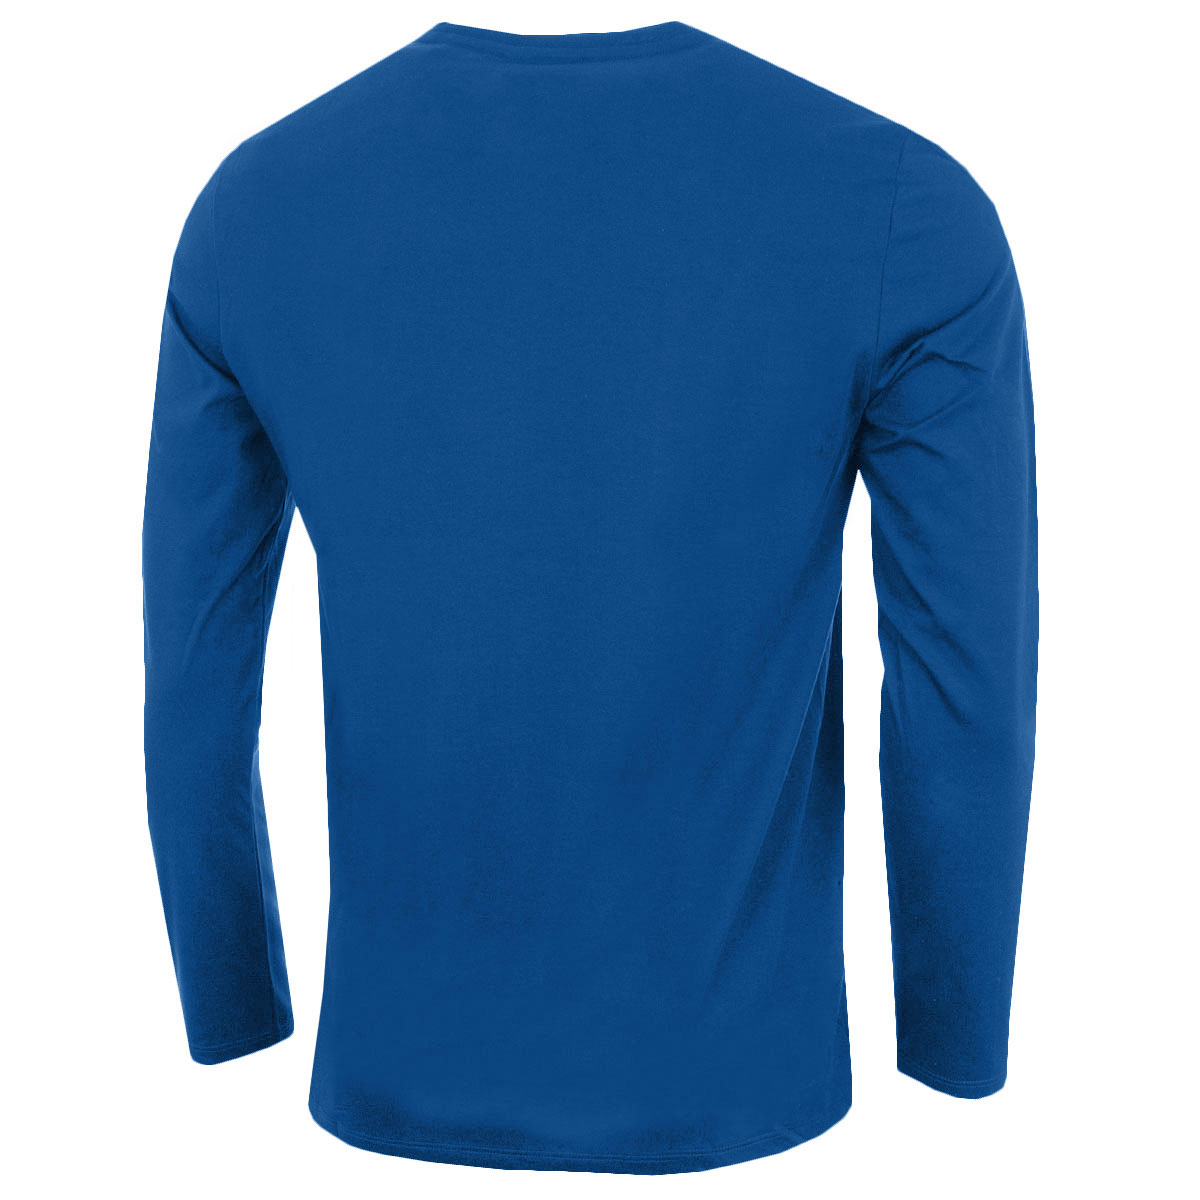 Lacoste-Mens-2019-LS-Crew-Neck-Cotton-T-Shirt-TH6712-Long-Sleeve-Tee-27-OFF-RRP thumbnail 5